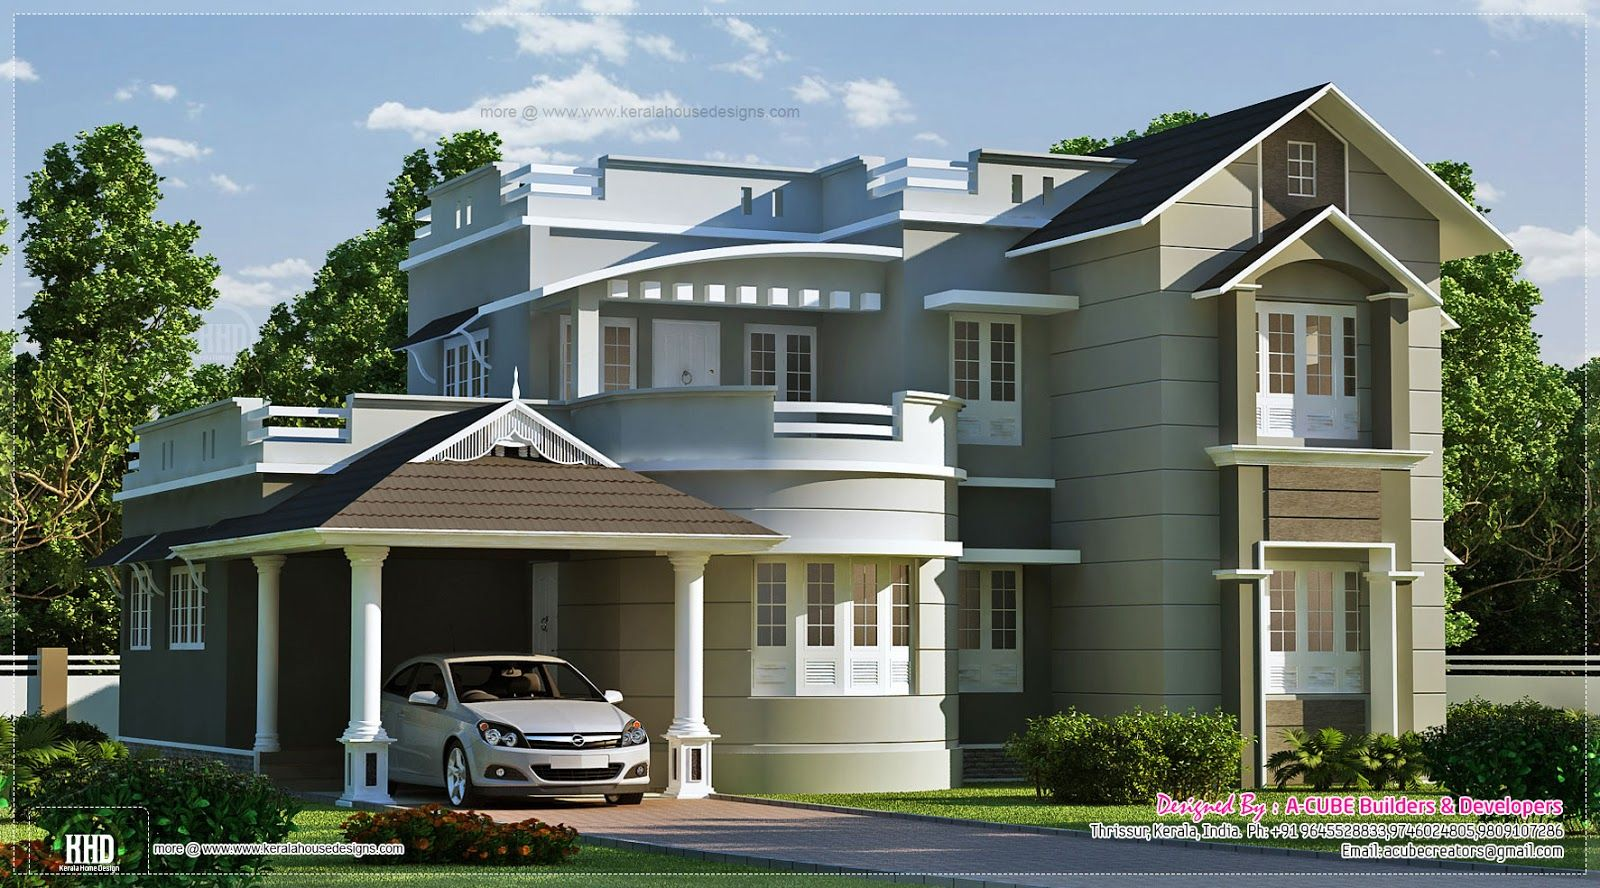 Awesome new house plans